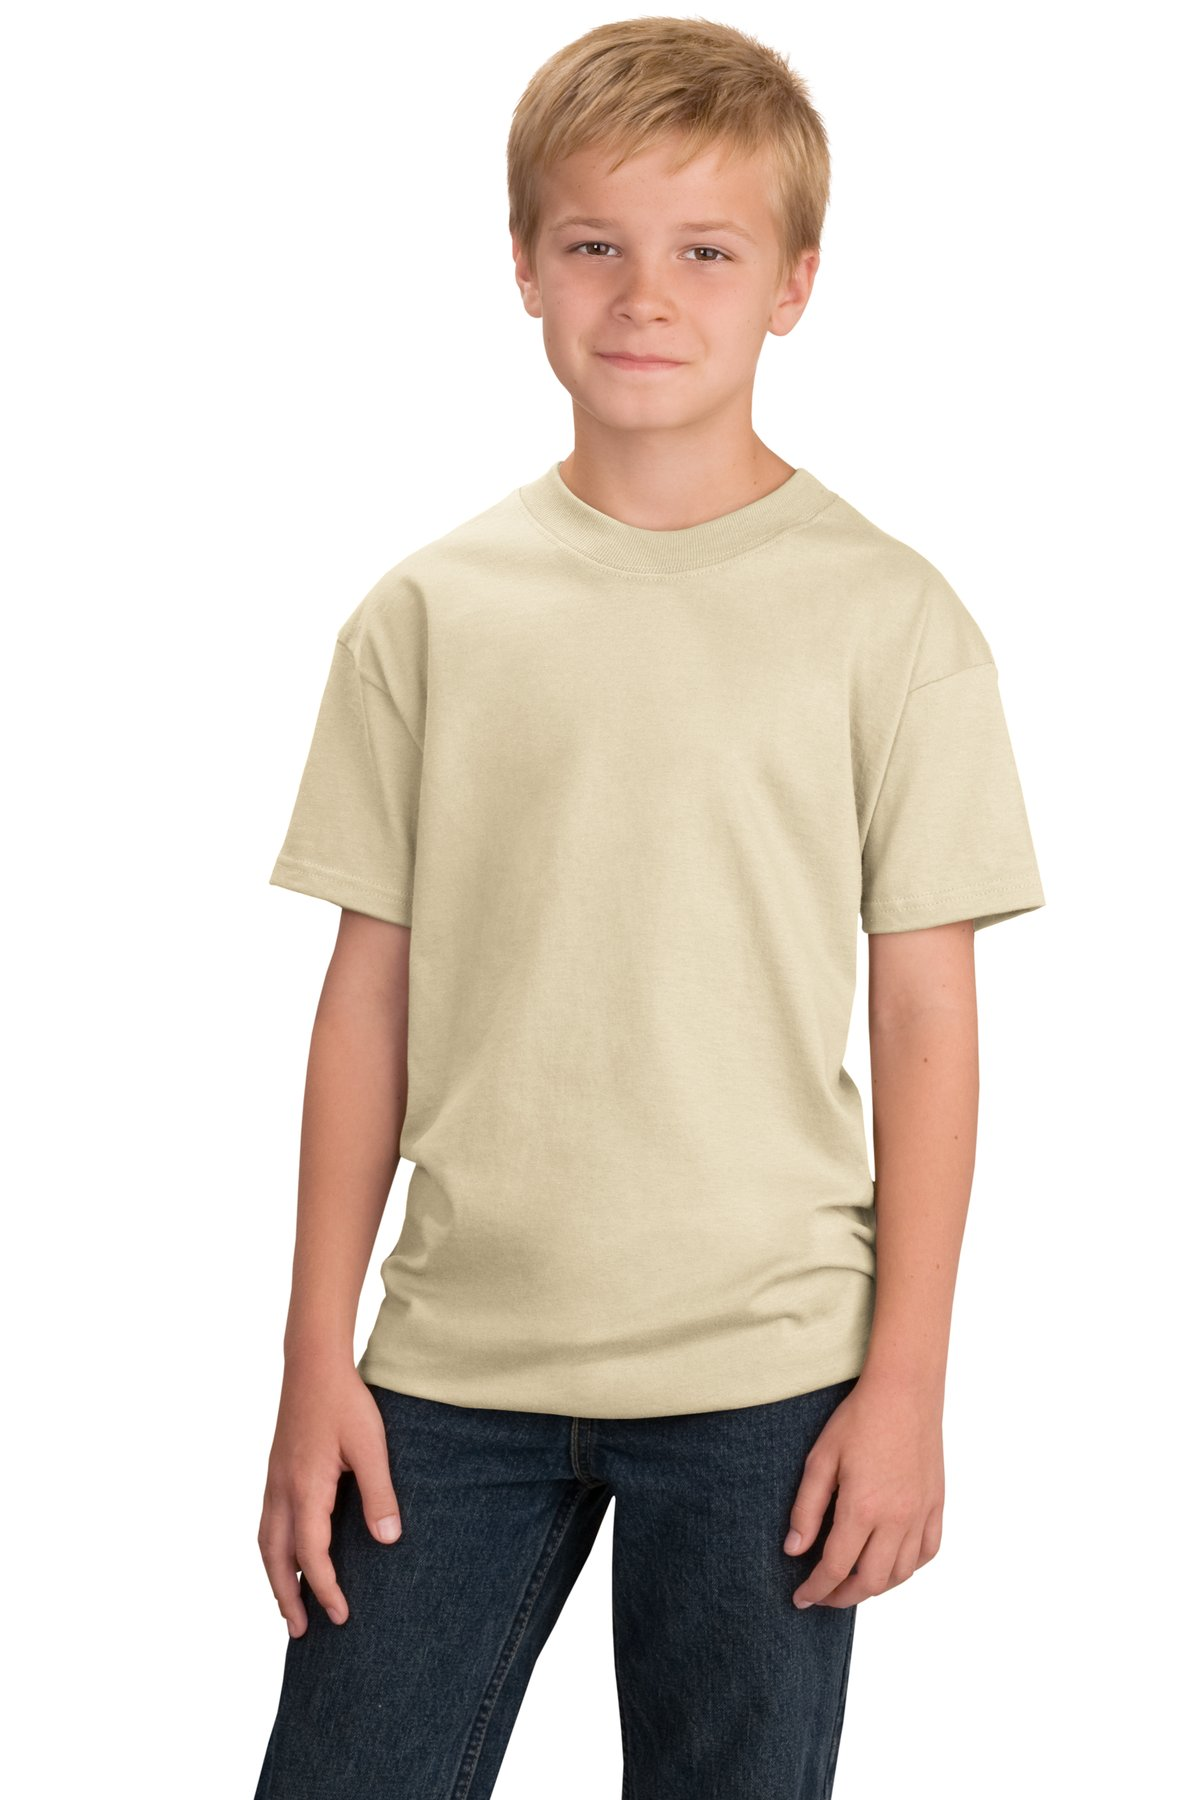 CLOSEOUT Port & Company  PC61YCO - Youth Essential T-Shirt